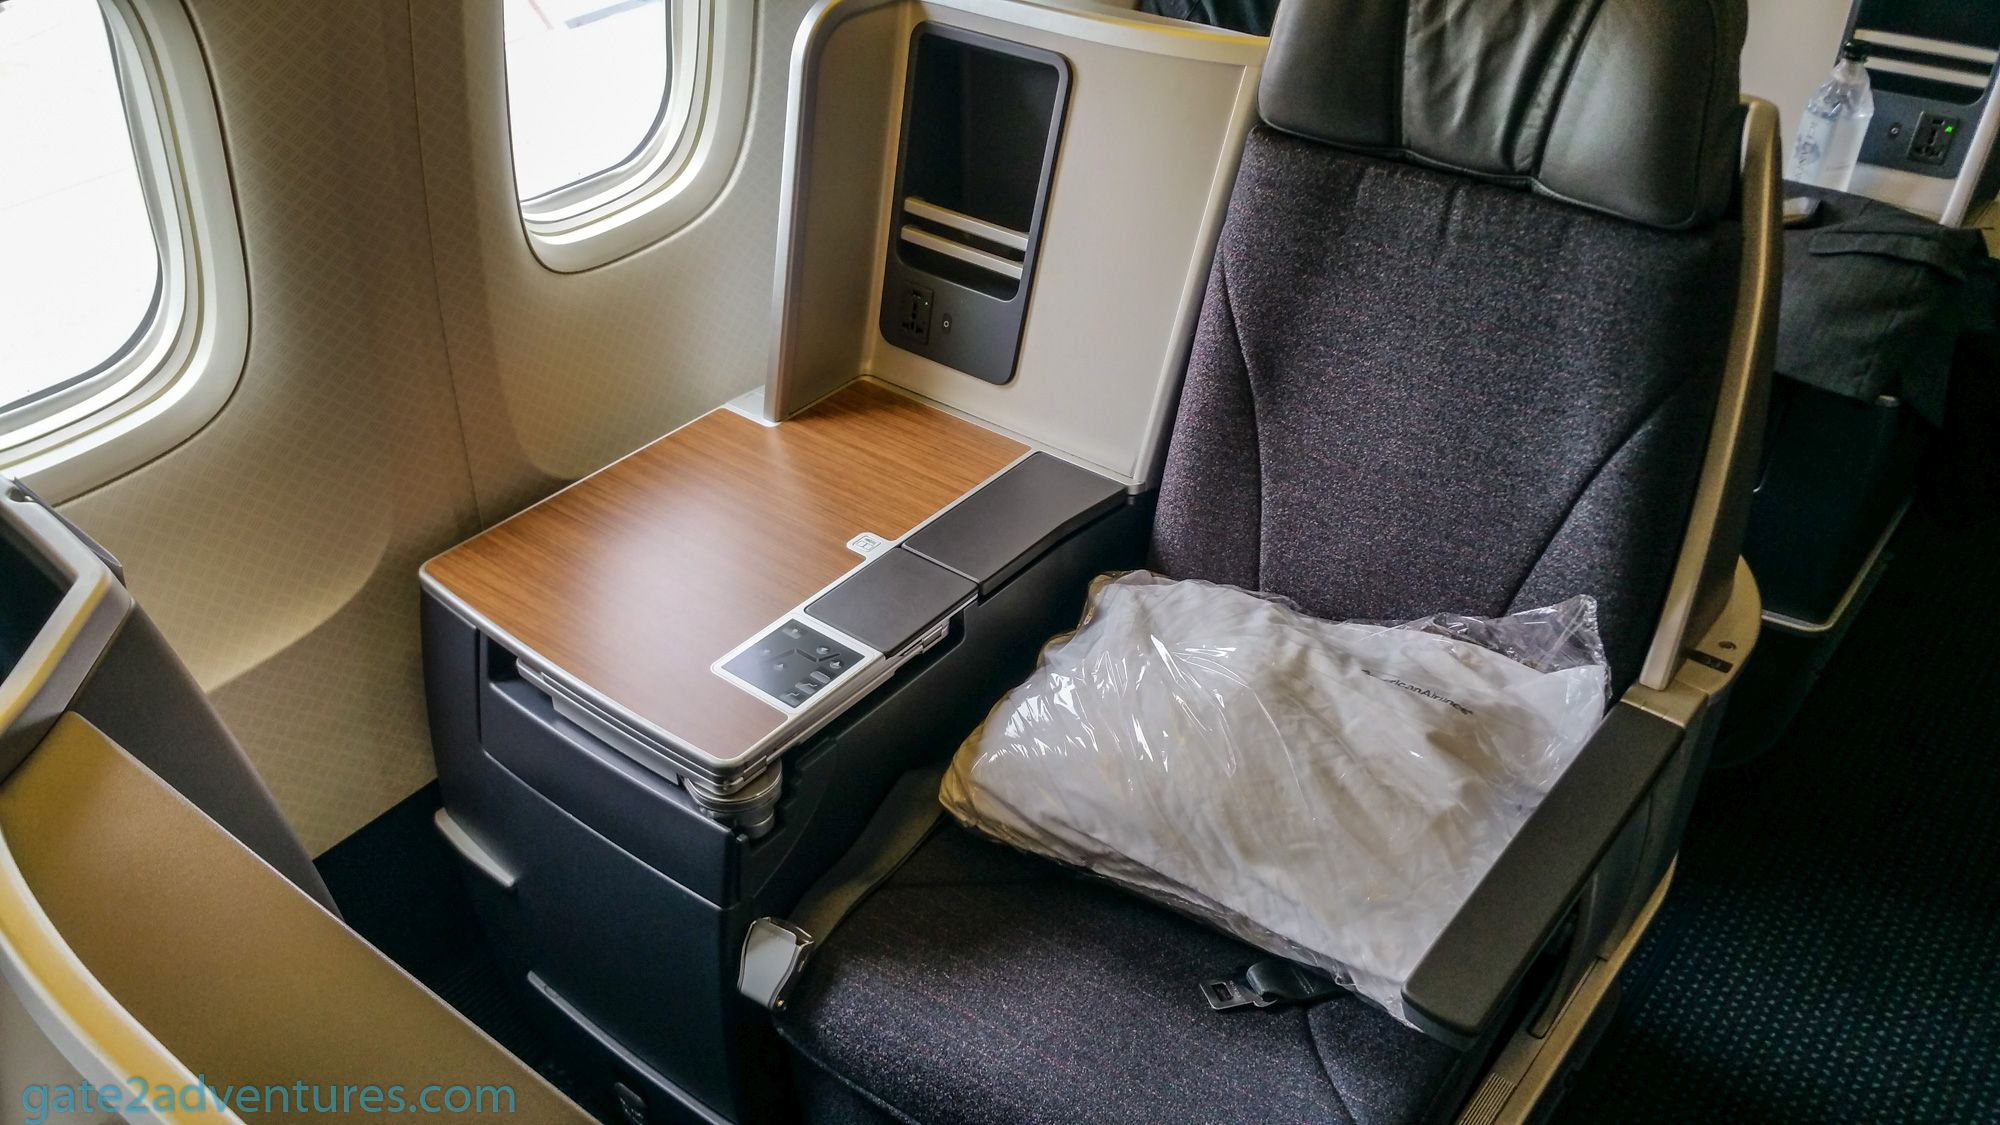 Flight Review: American Airlines Business Class – Boeing 767-300 New York (JFK) to Zurich, Switzerland (ZRH)